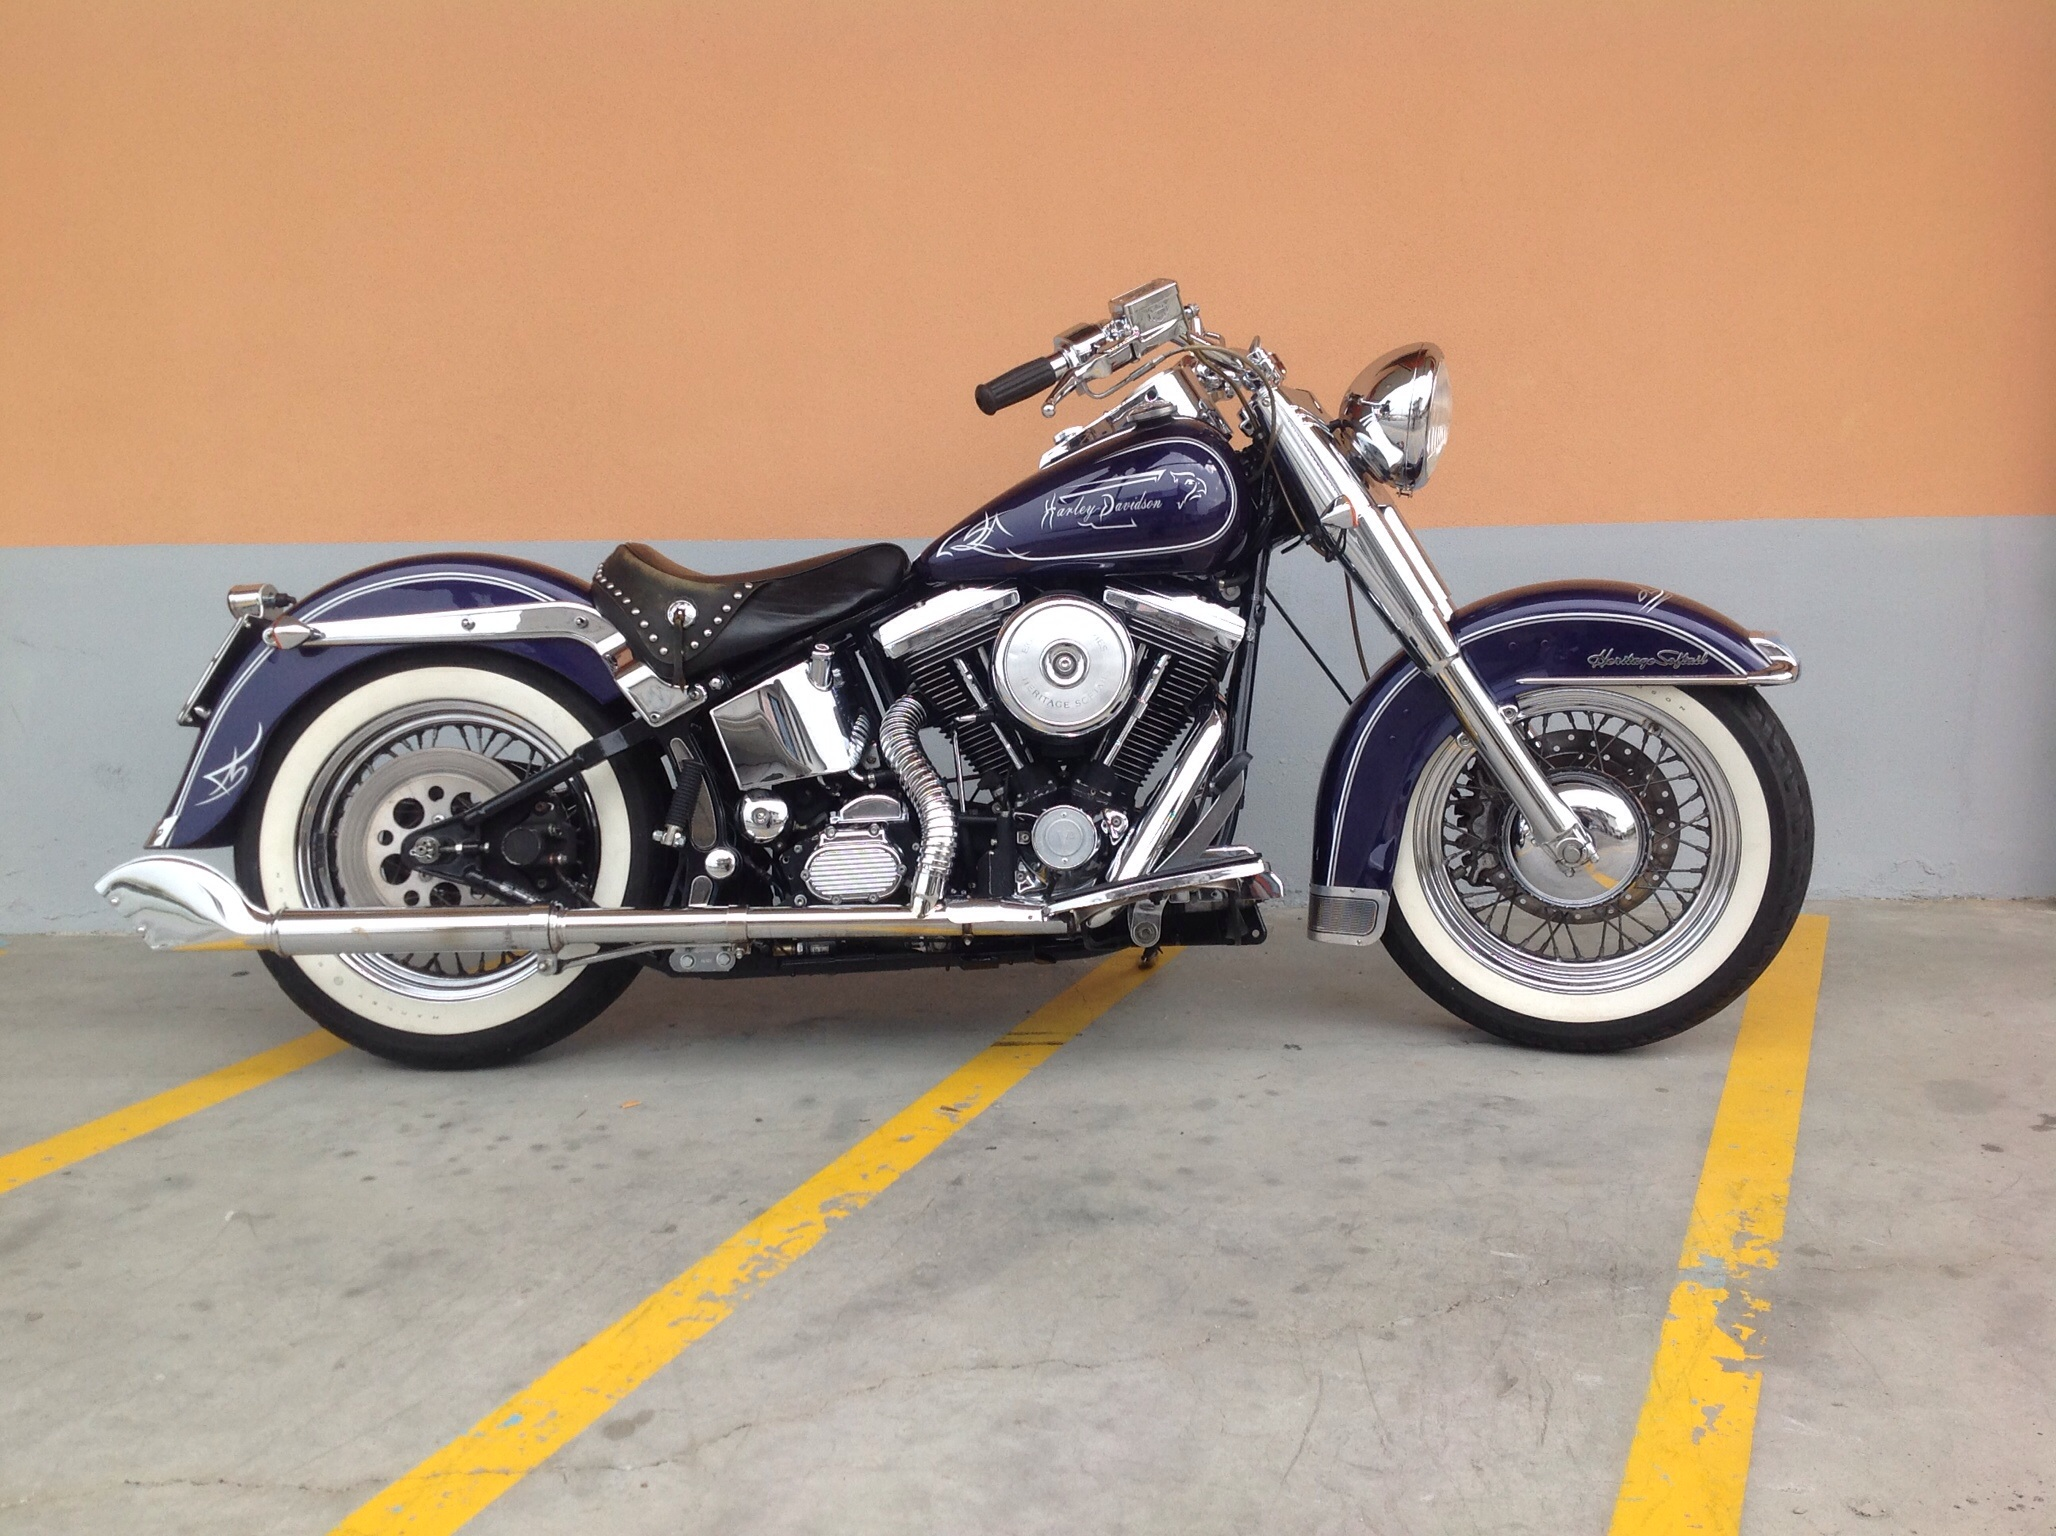 Harley-Davidson FLSTC Heritage Softail Classic 1998 images #80157